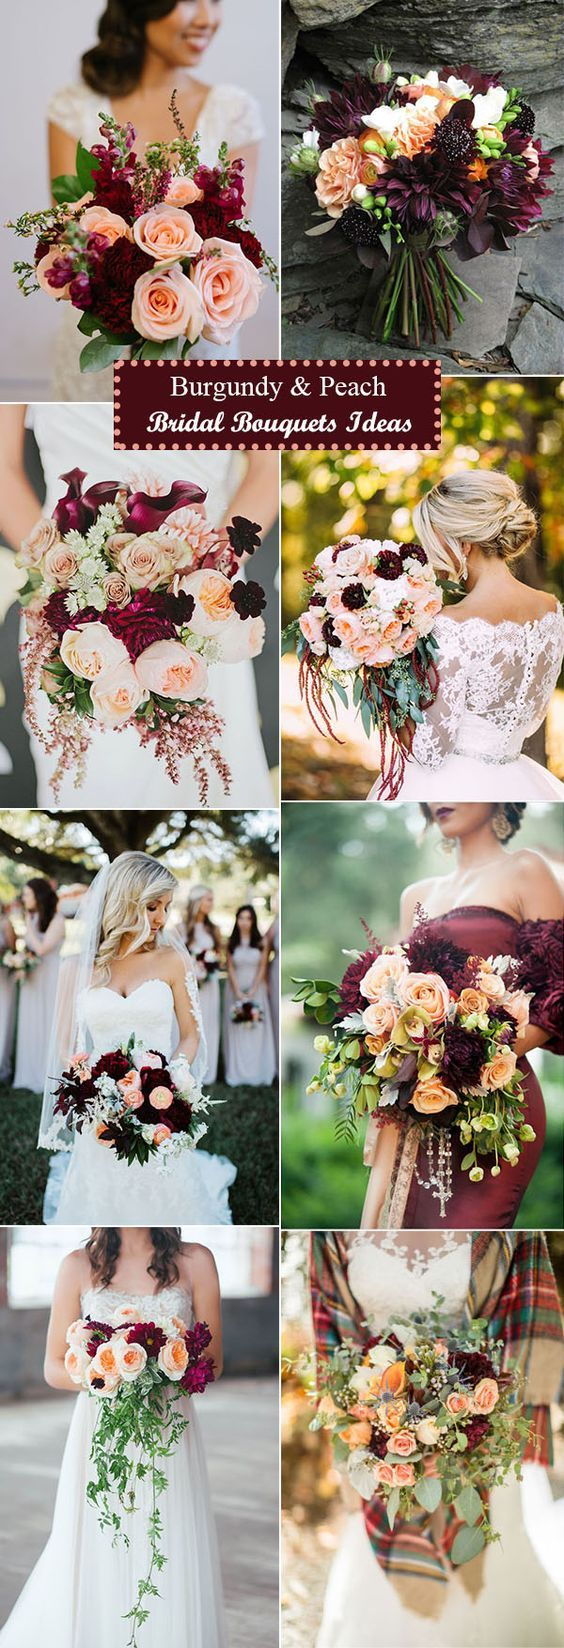 Wedding decorations at church november 2018  Inspiring Burgundy and Peach Wedding Ideas for   Flowers